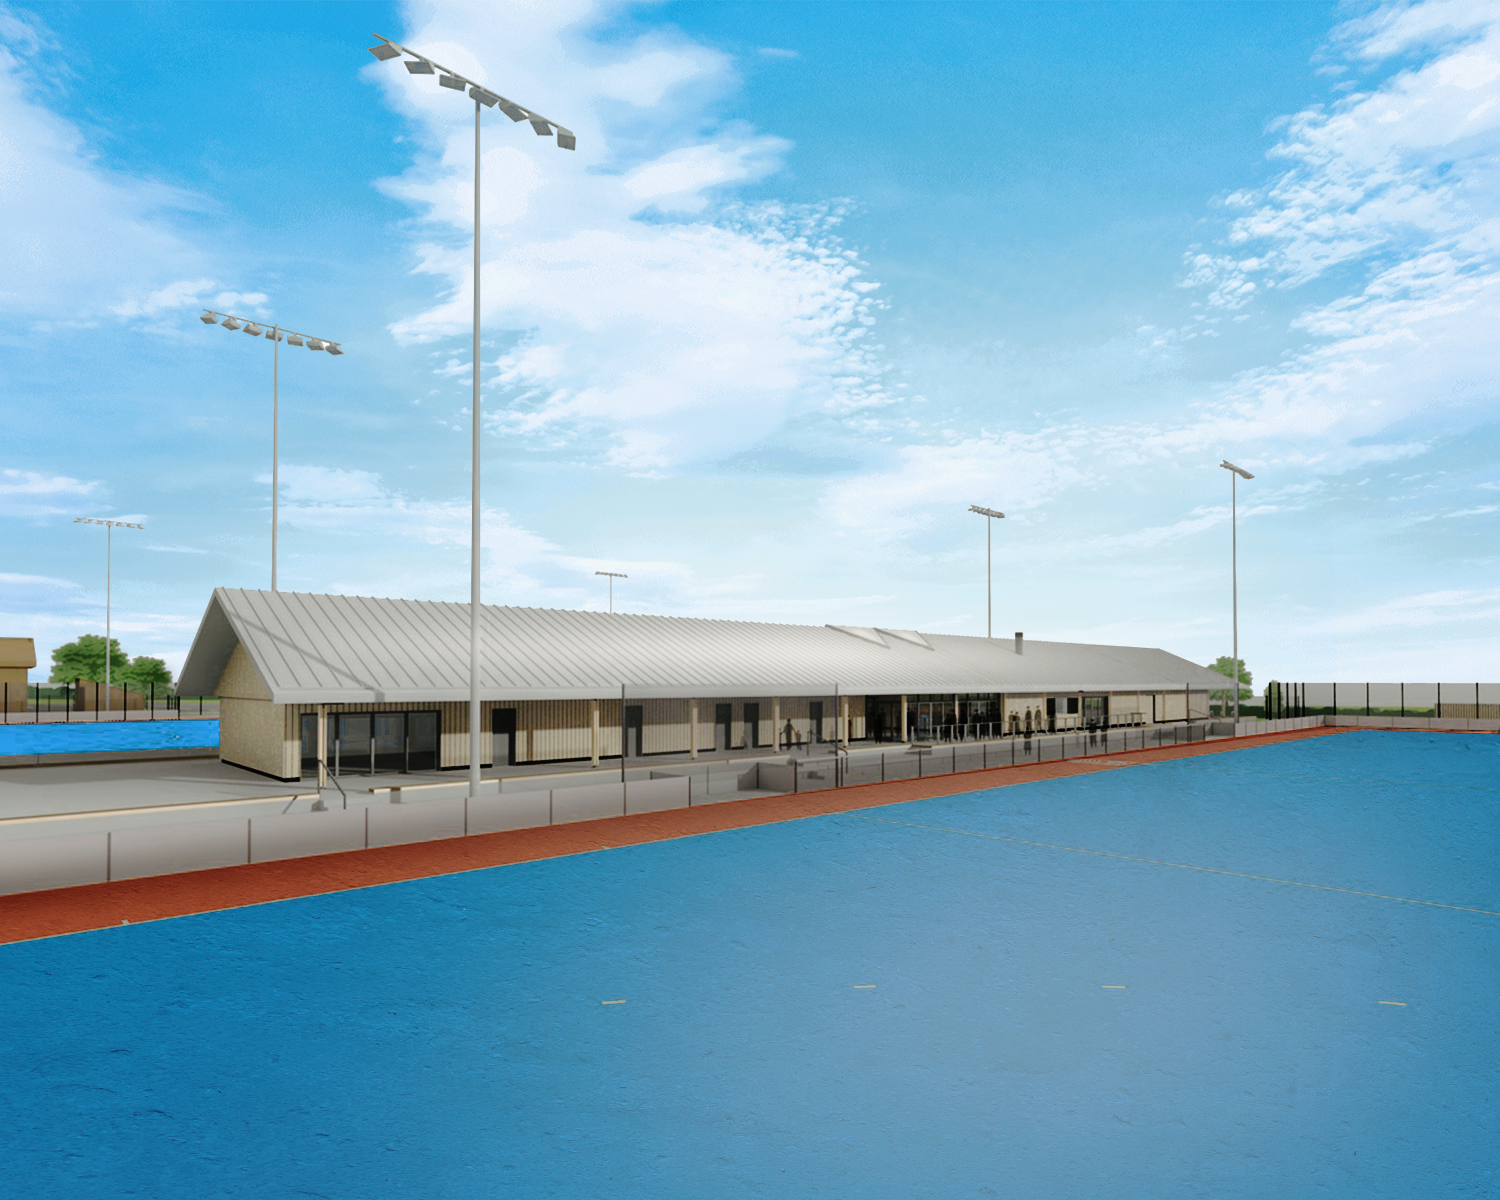 Sports Complex for Redmaids' High School submitted for planning